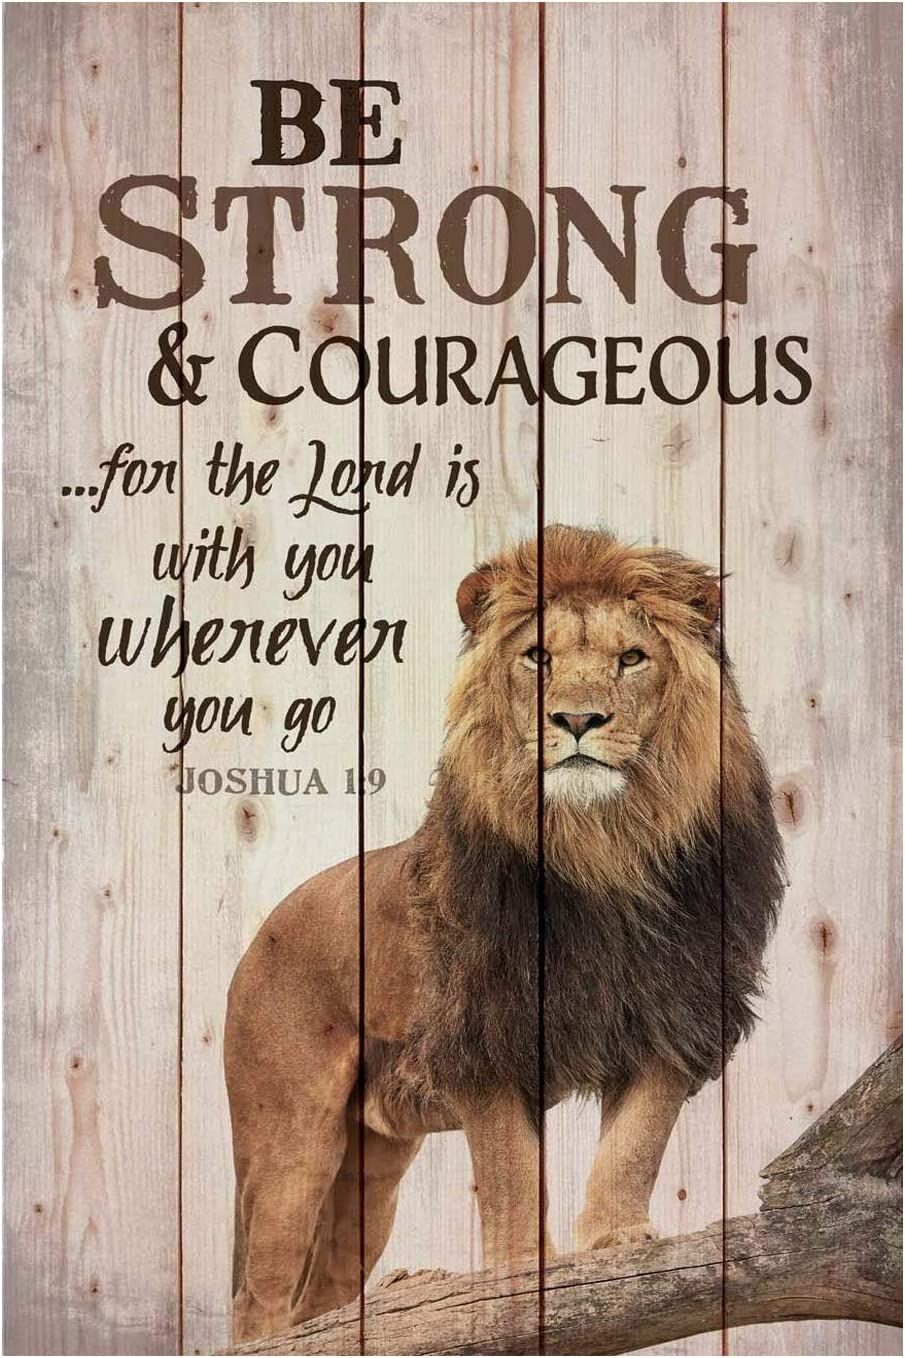 PXIYOU Funny Lion Signs Be Strong and Courageous Do Not Be Afraid for The Lord Your God Will Be with You Wherever You Go Joshua 1:9 Vintage Metal Bar Sign Coffee Cafe Home Wall Decor 8X12Inch